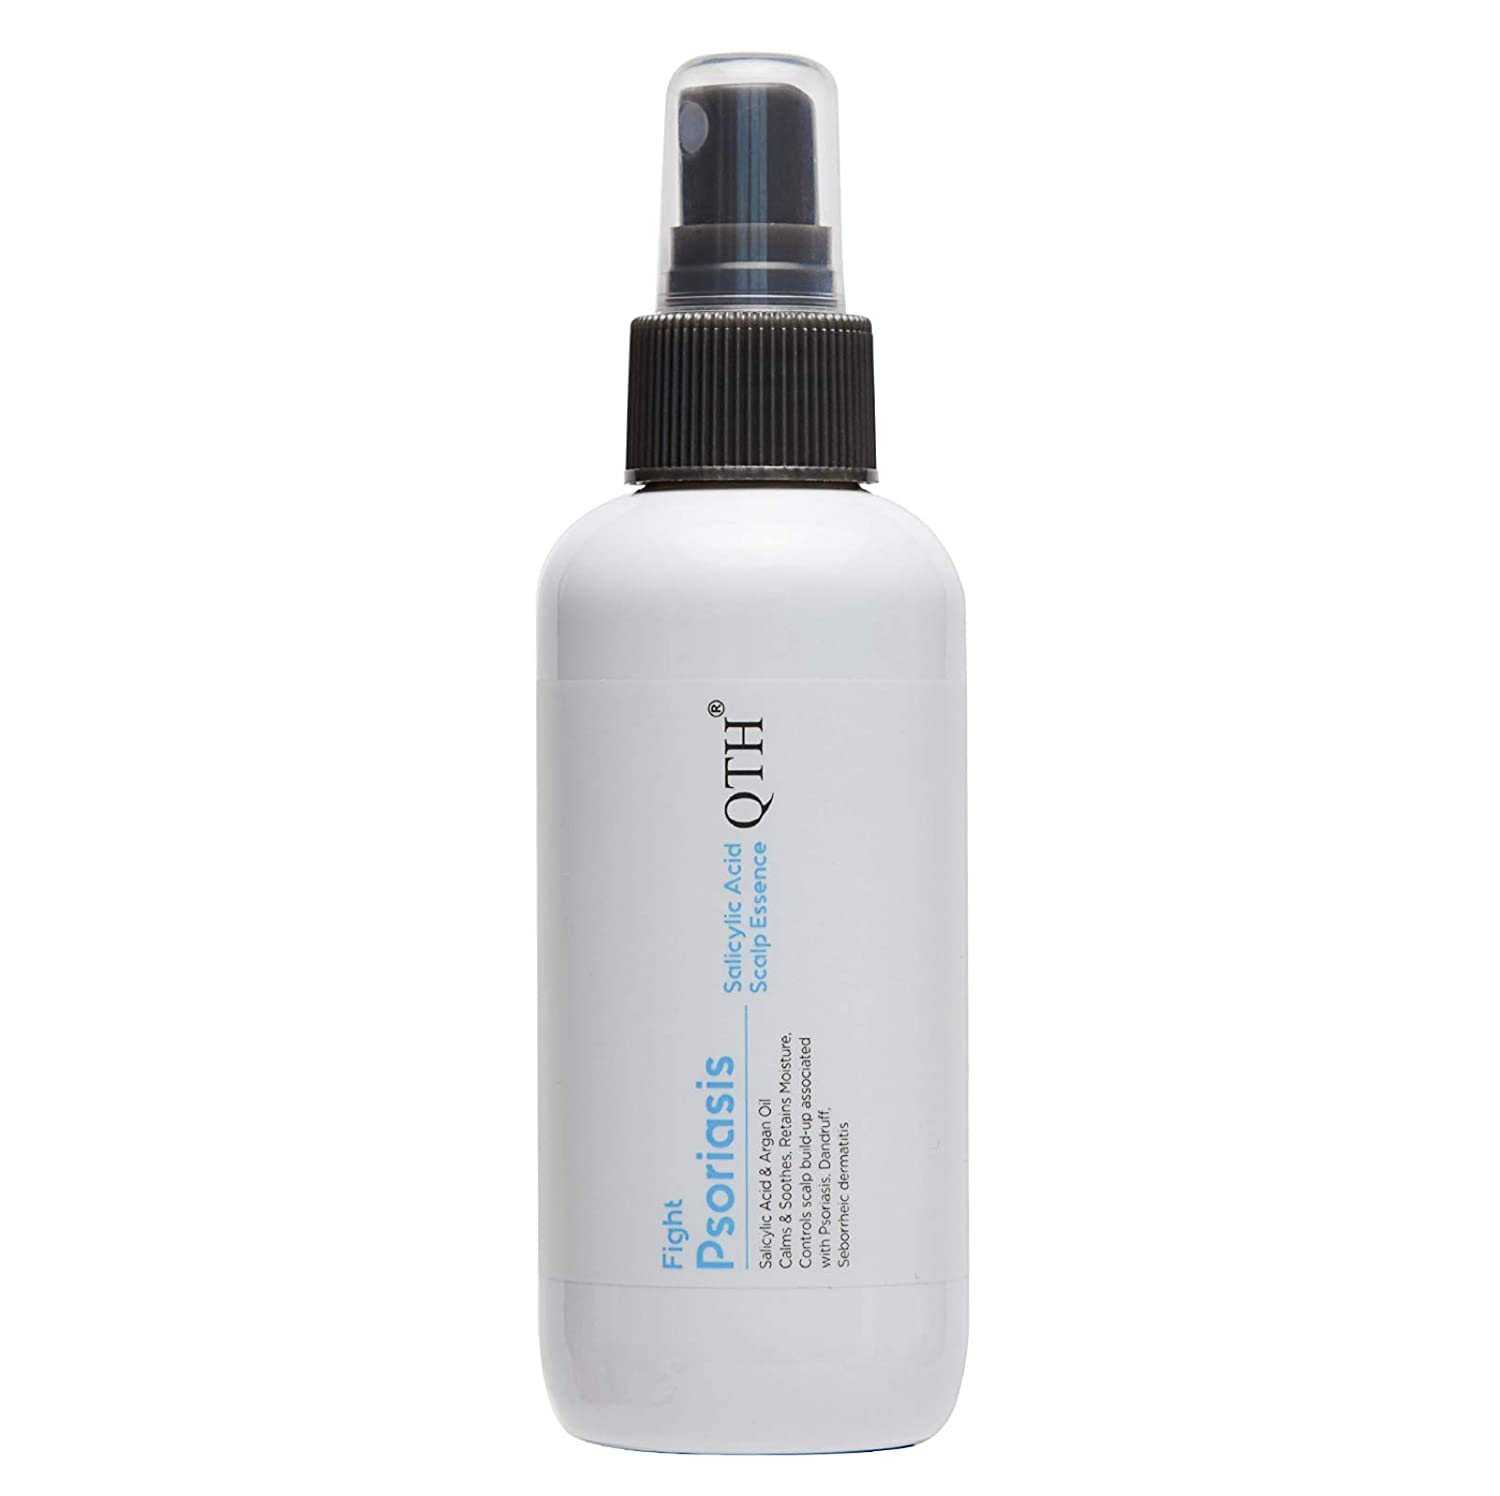 QTH Psoriasis Scalp Therapeutic Essence with Salicylic Acid & Argan Oil, Solution for Dry Itchy Skin